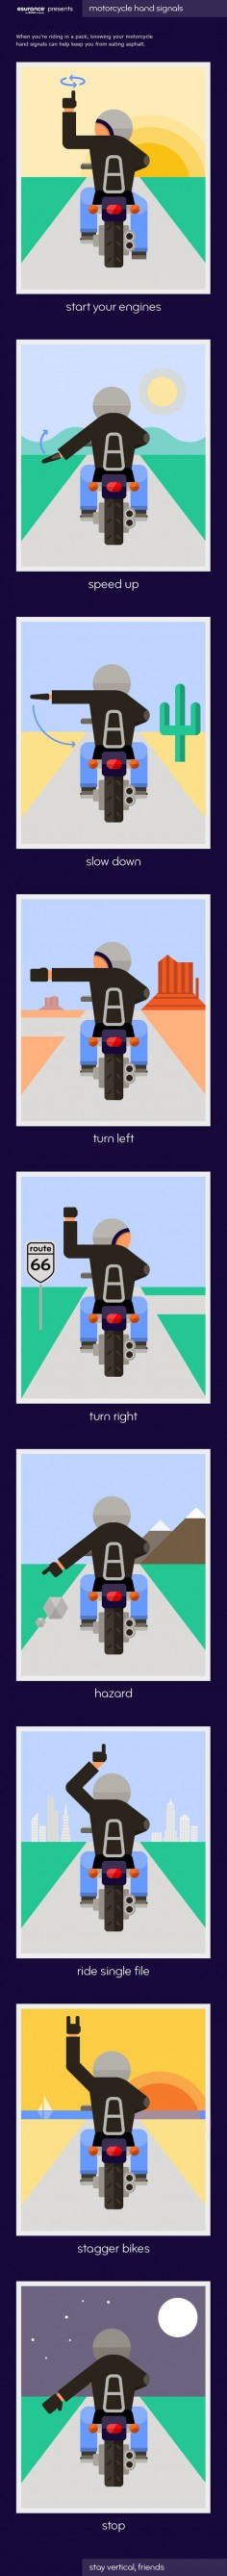 "Motorcycle riders use a variety of signals to indicate everything from ""slow down"" to ""watch out, hazard ahead."" Check out the infograph to see the top 9 motorcycle hand signals."